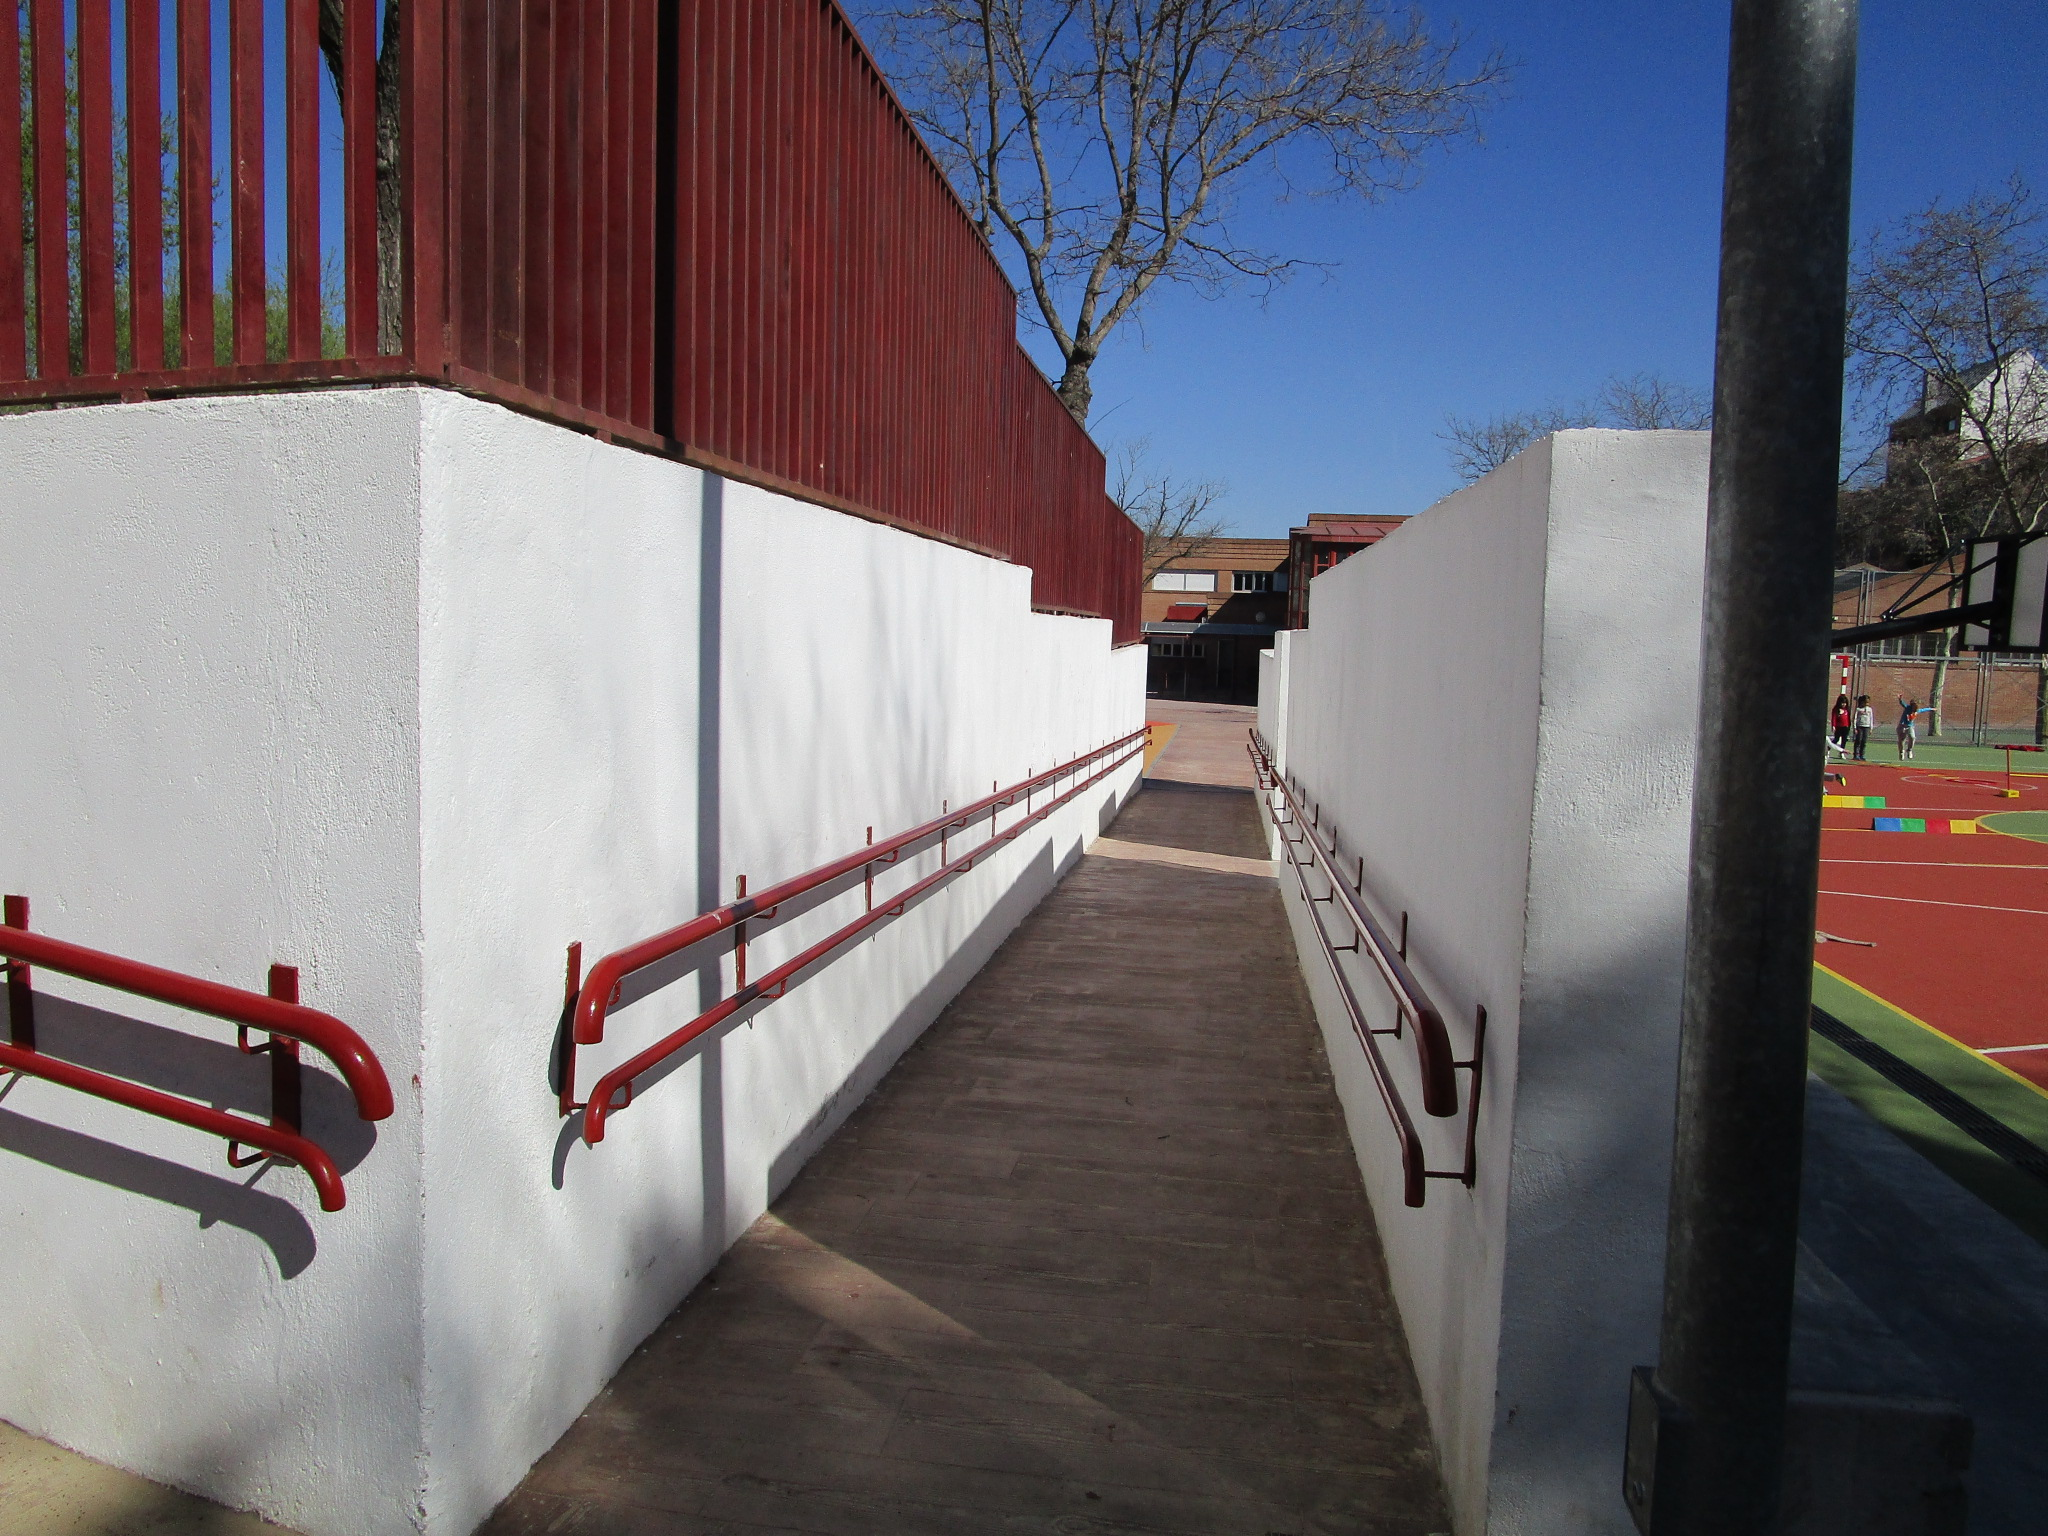 RAMPA PATIO CORRALITO